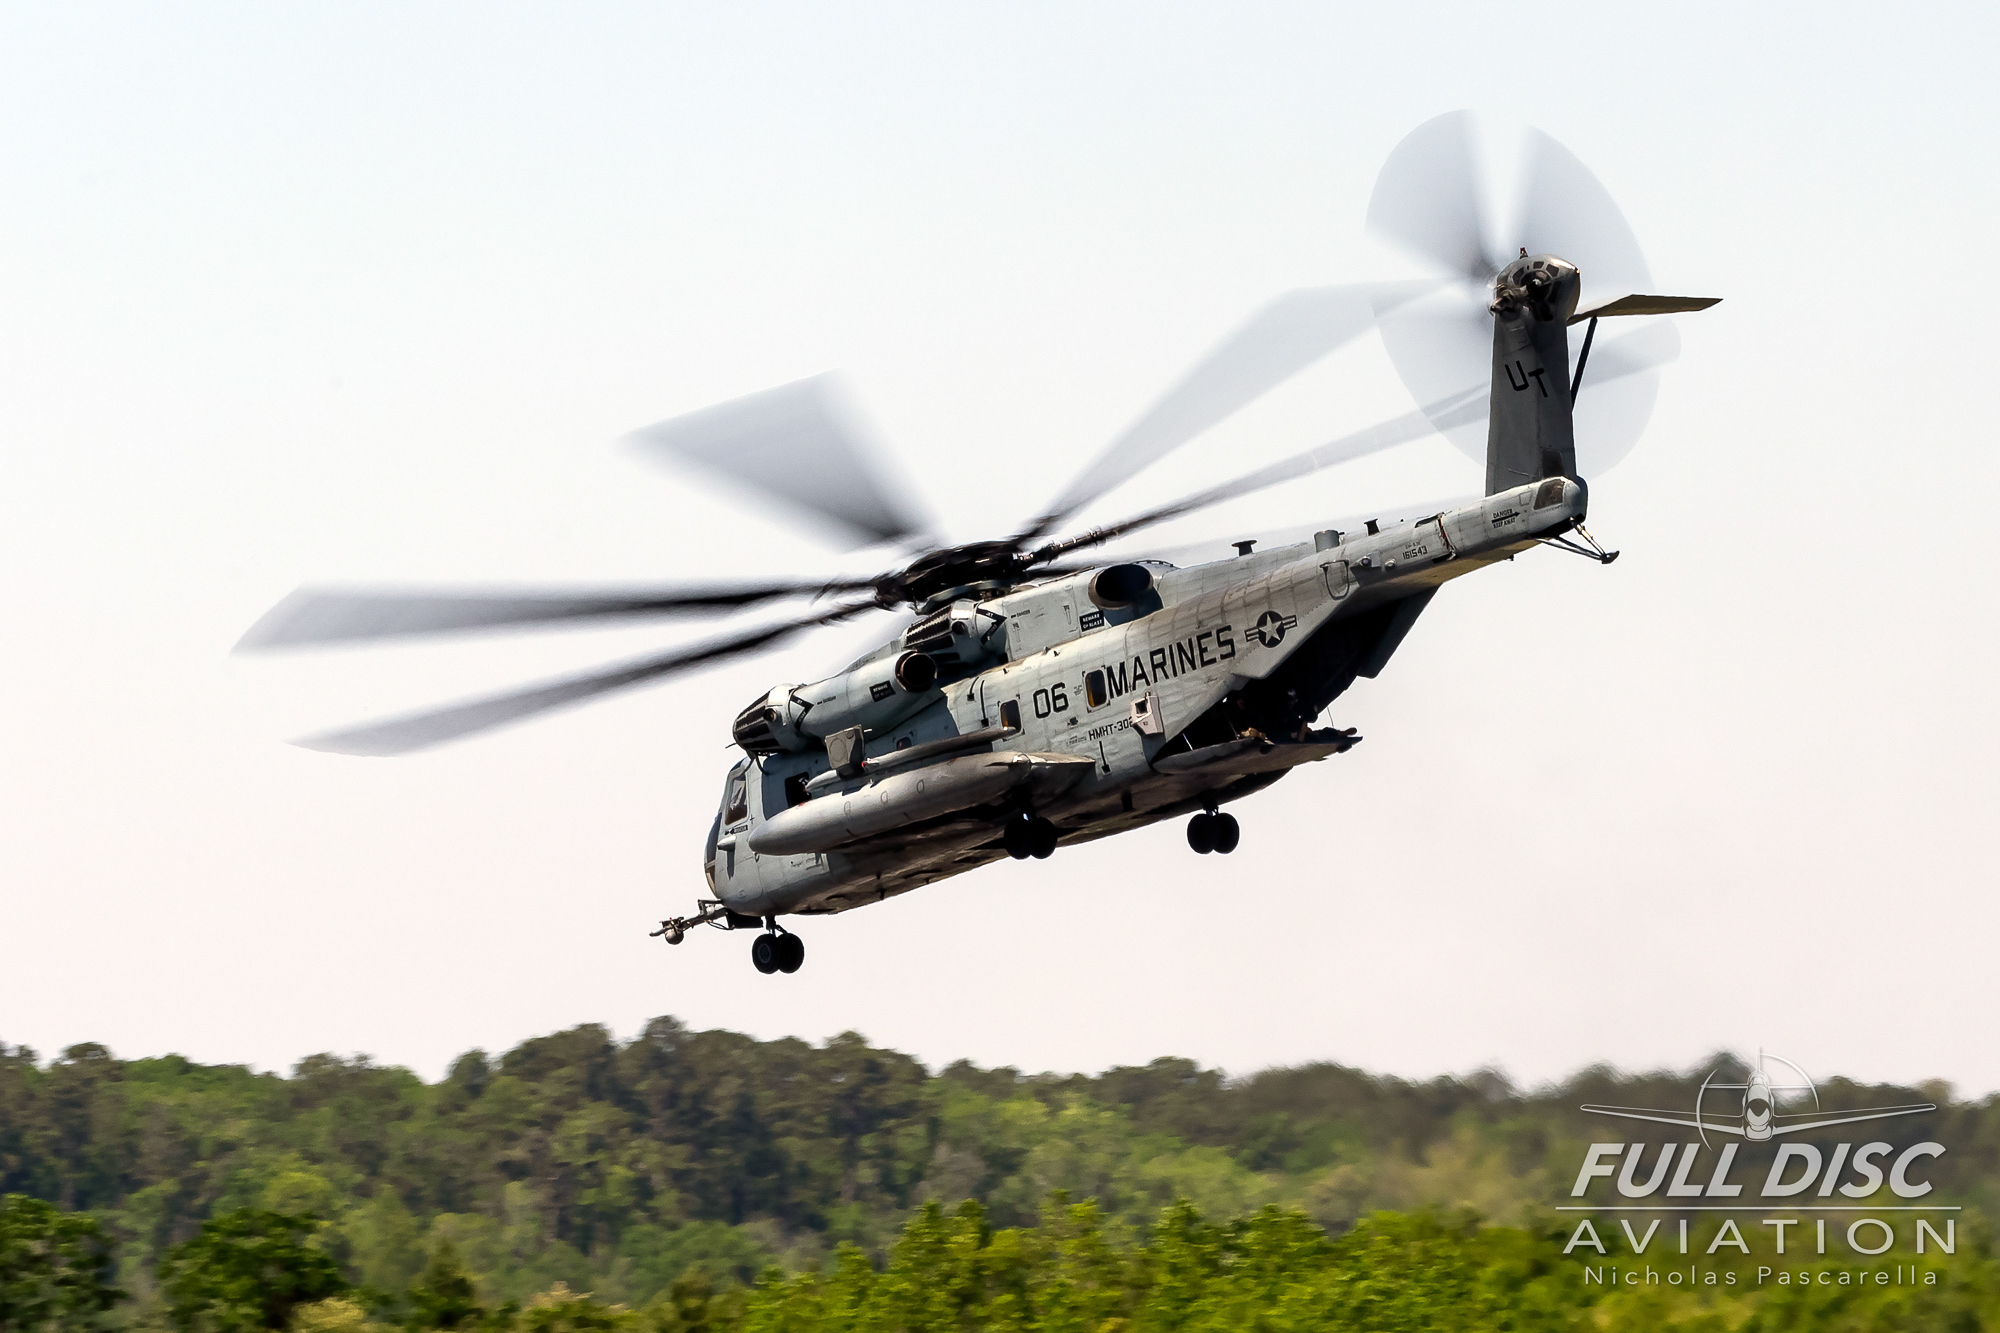 ch53_seastallion_nicholaspascarella_fulldiscavation_aviation_airshow.jpg